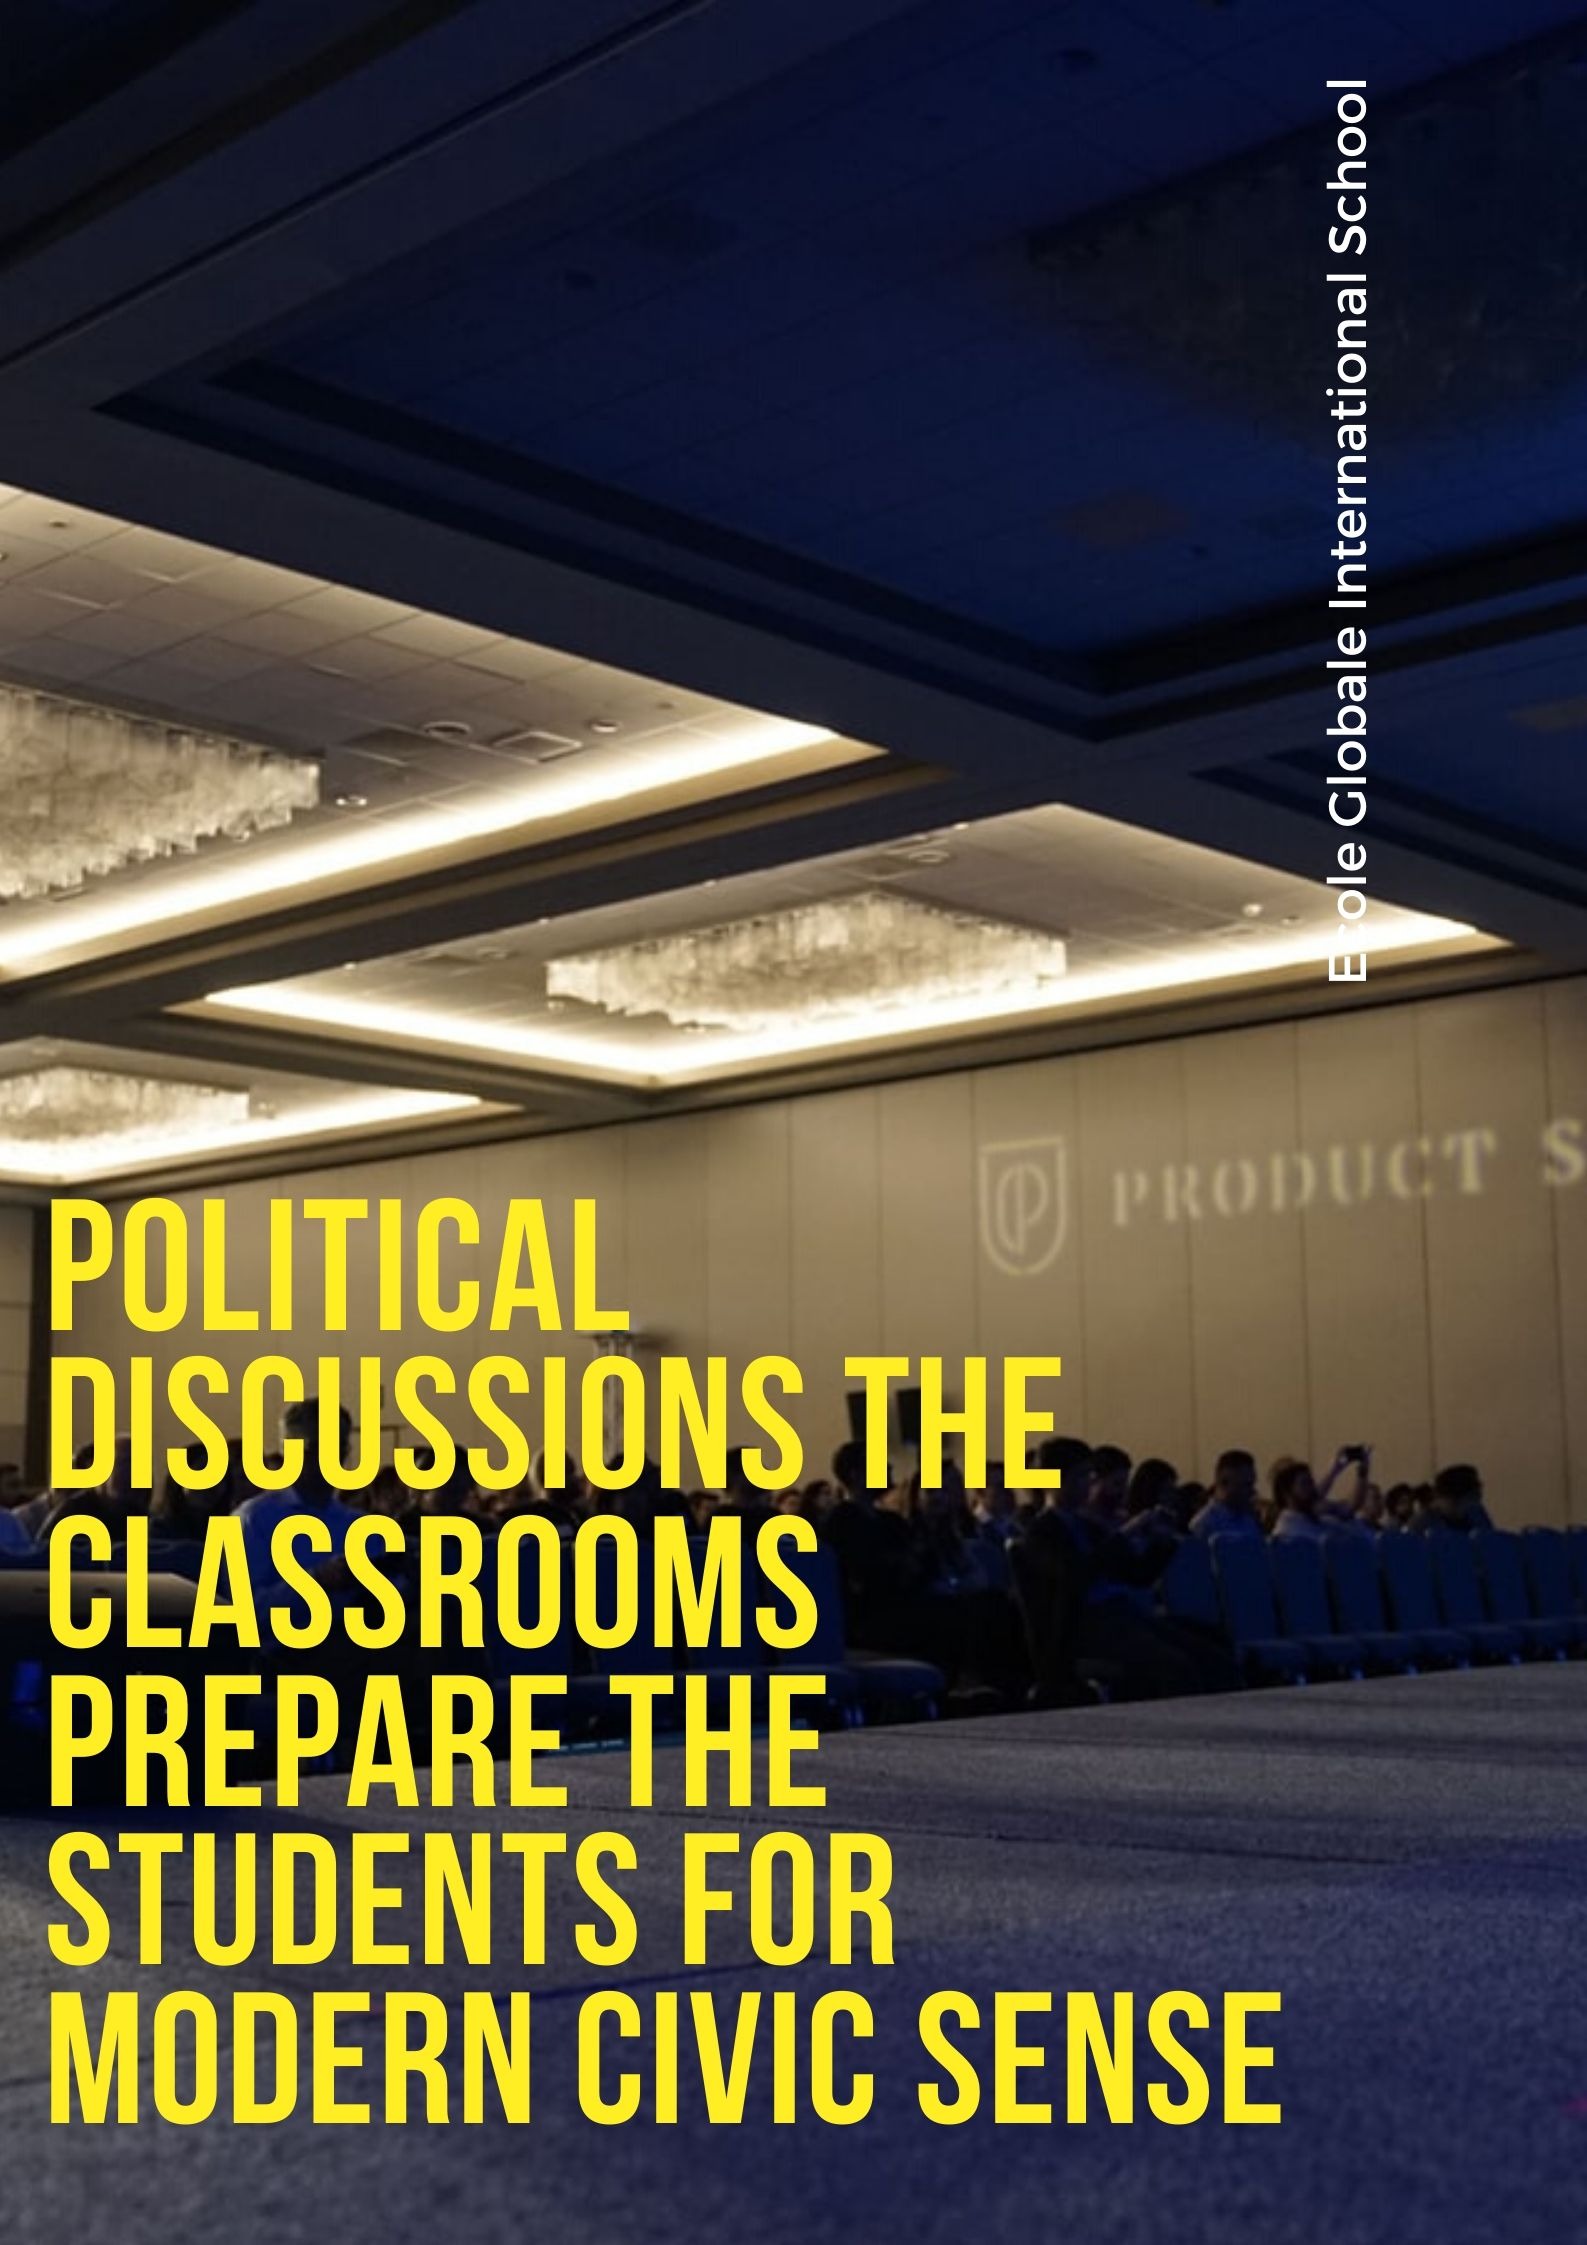 Political discussions the classrooms prepare the students for modern civic sense